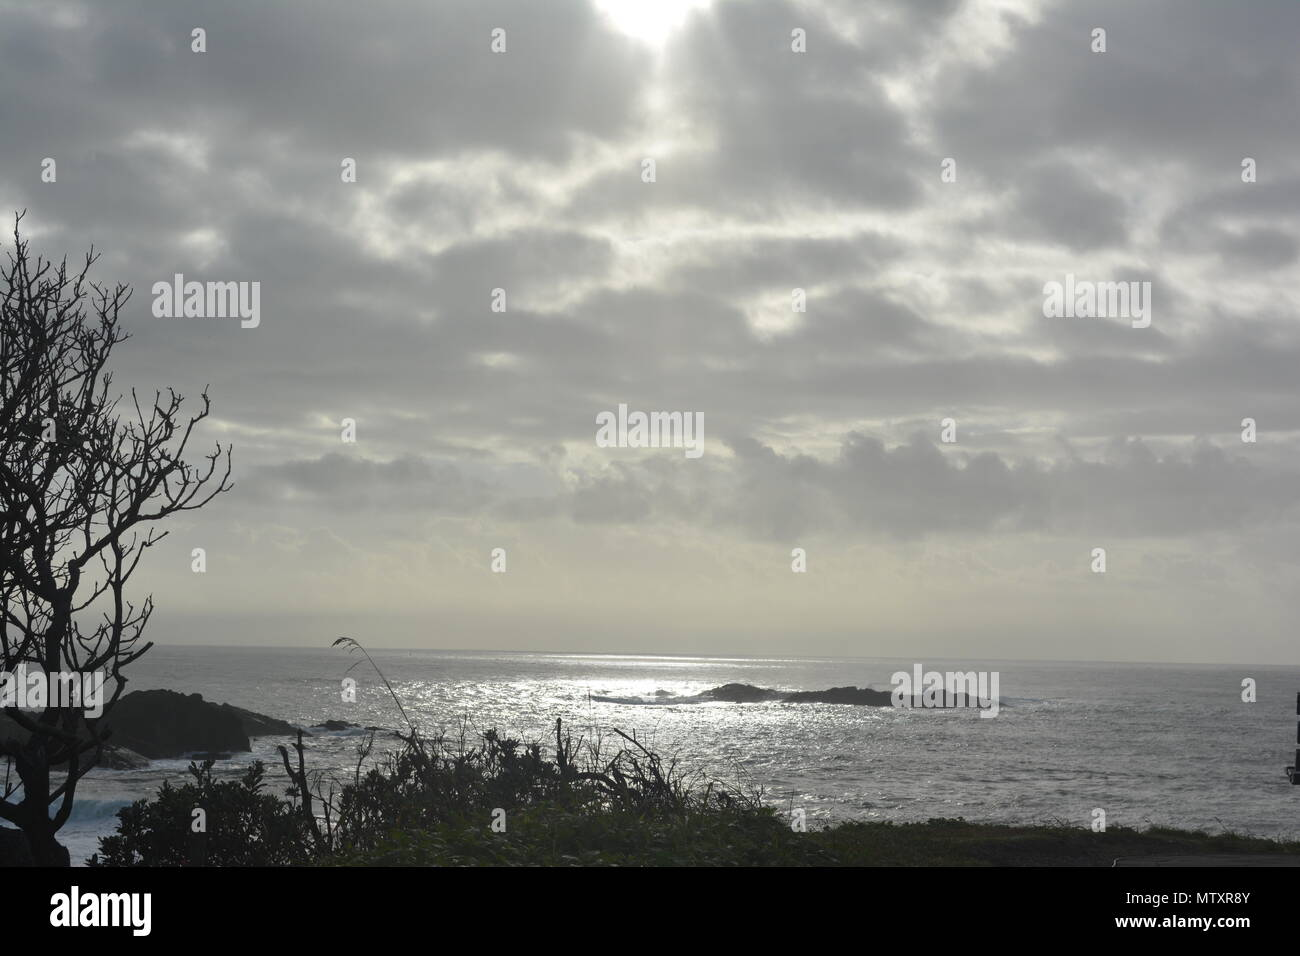 Sunlight gleaming through clouds onto the sea - Stock Image